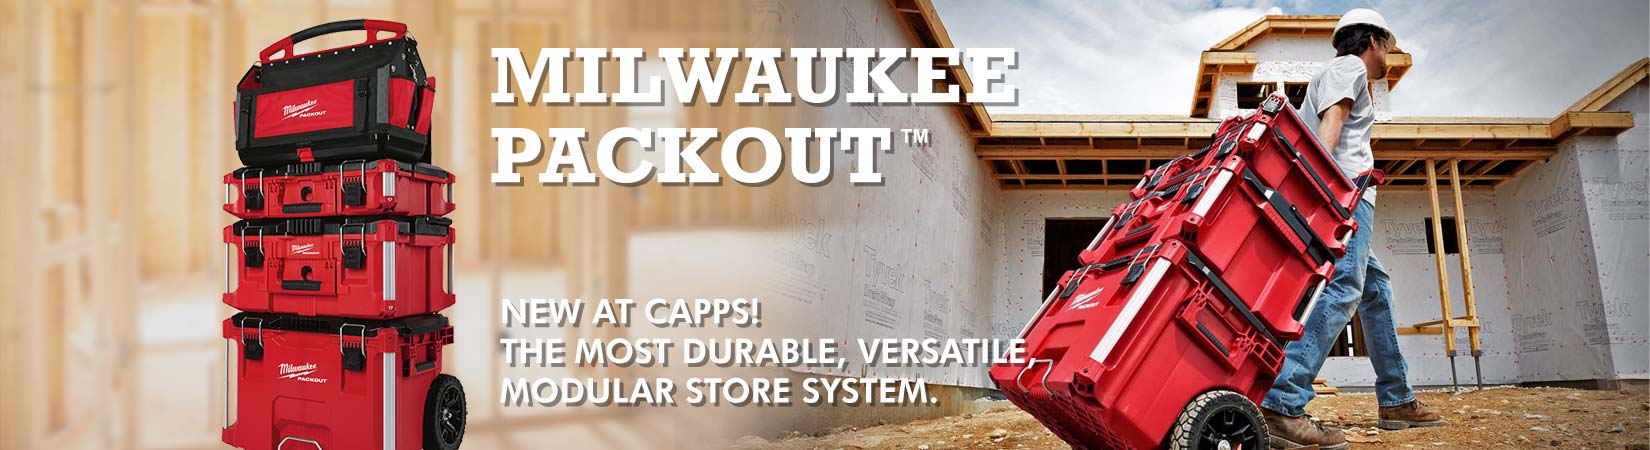 milwaukee packout image